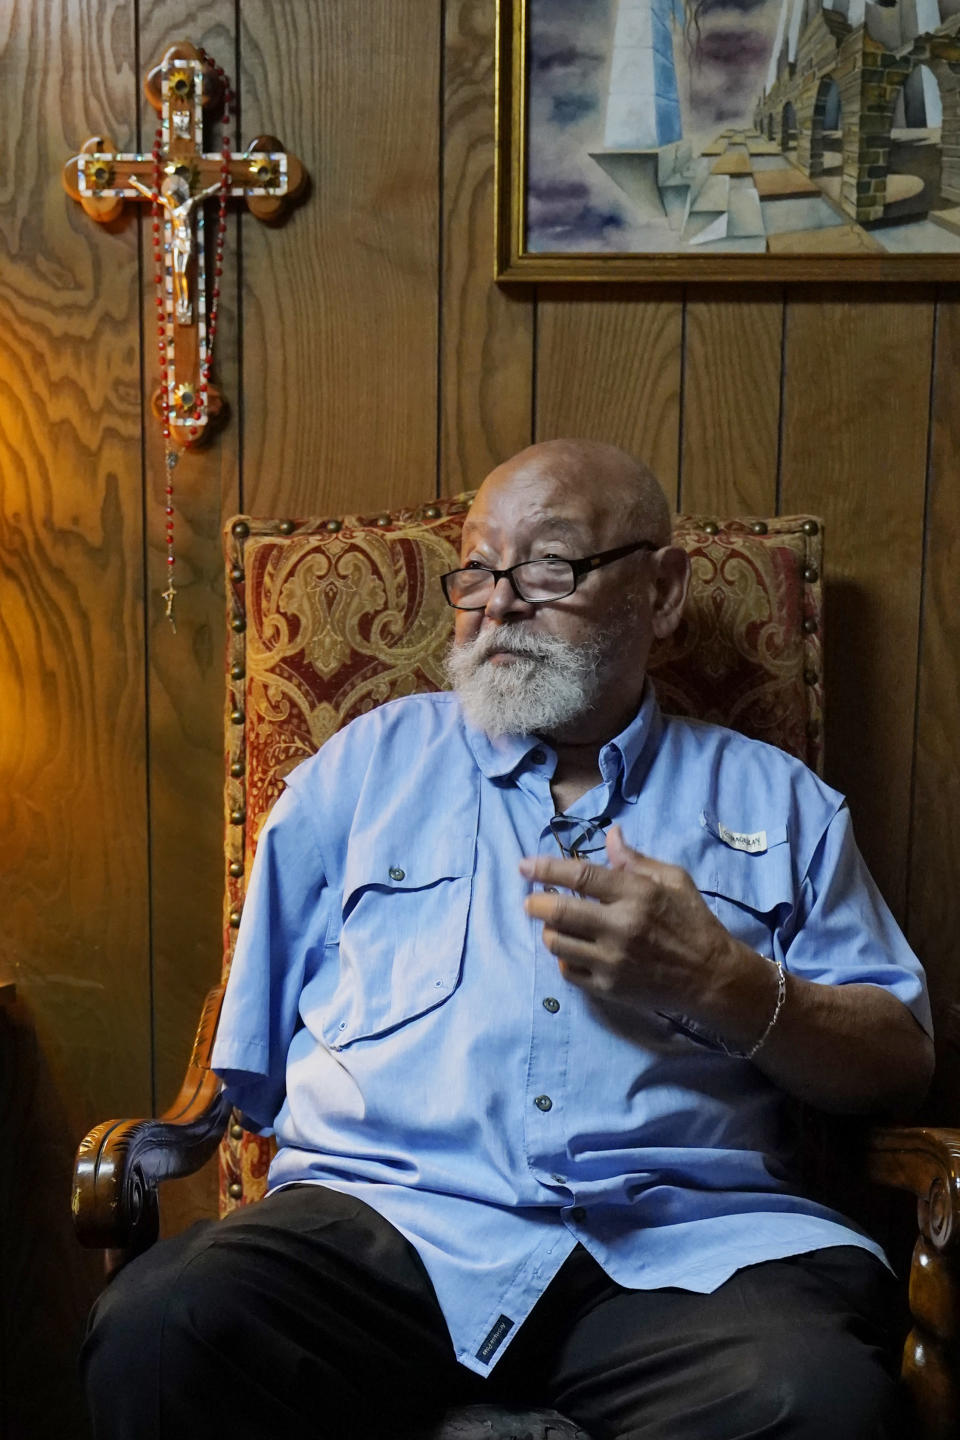 """James Goodwin, owner of the Oklahoma Eagle newspaper, speaks during an interview Wednesday, April 14, 2021, in Tulsa, Okla. """"Greenwood proved that if you had assets, you could accumulate wealth. ... It was not a matter of intelligence, that the Black man was inferior to white men. It disproved the whole idea that racial superiority was a fact of life."""" The Black newspaper was established in Tulsa a year after the massacre. (AP Photo/Sue Ogrocki)"""